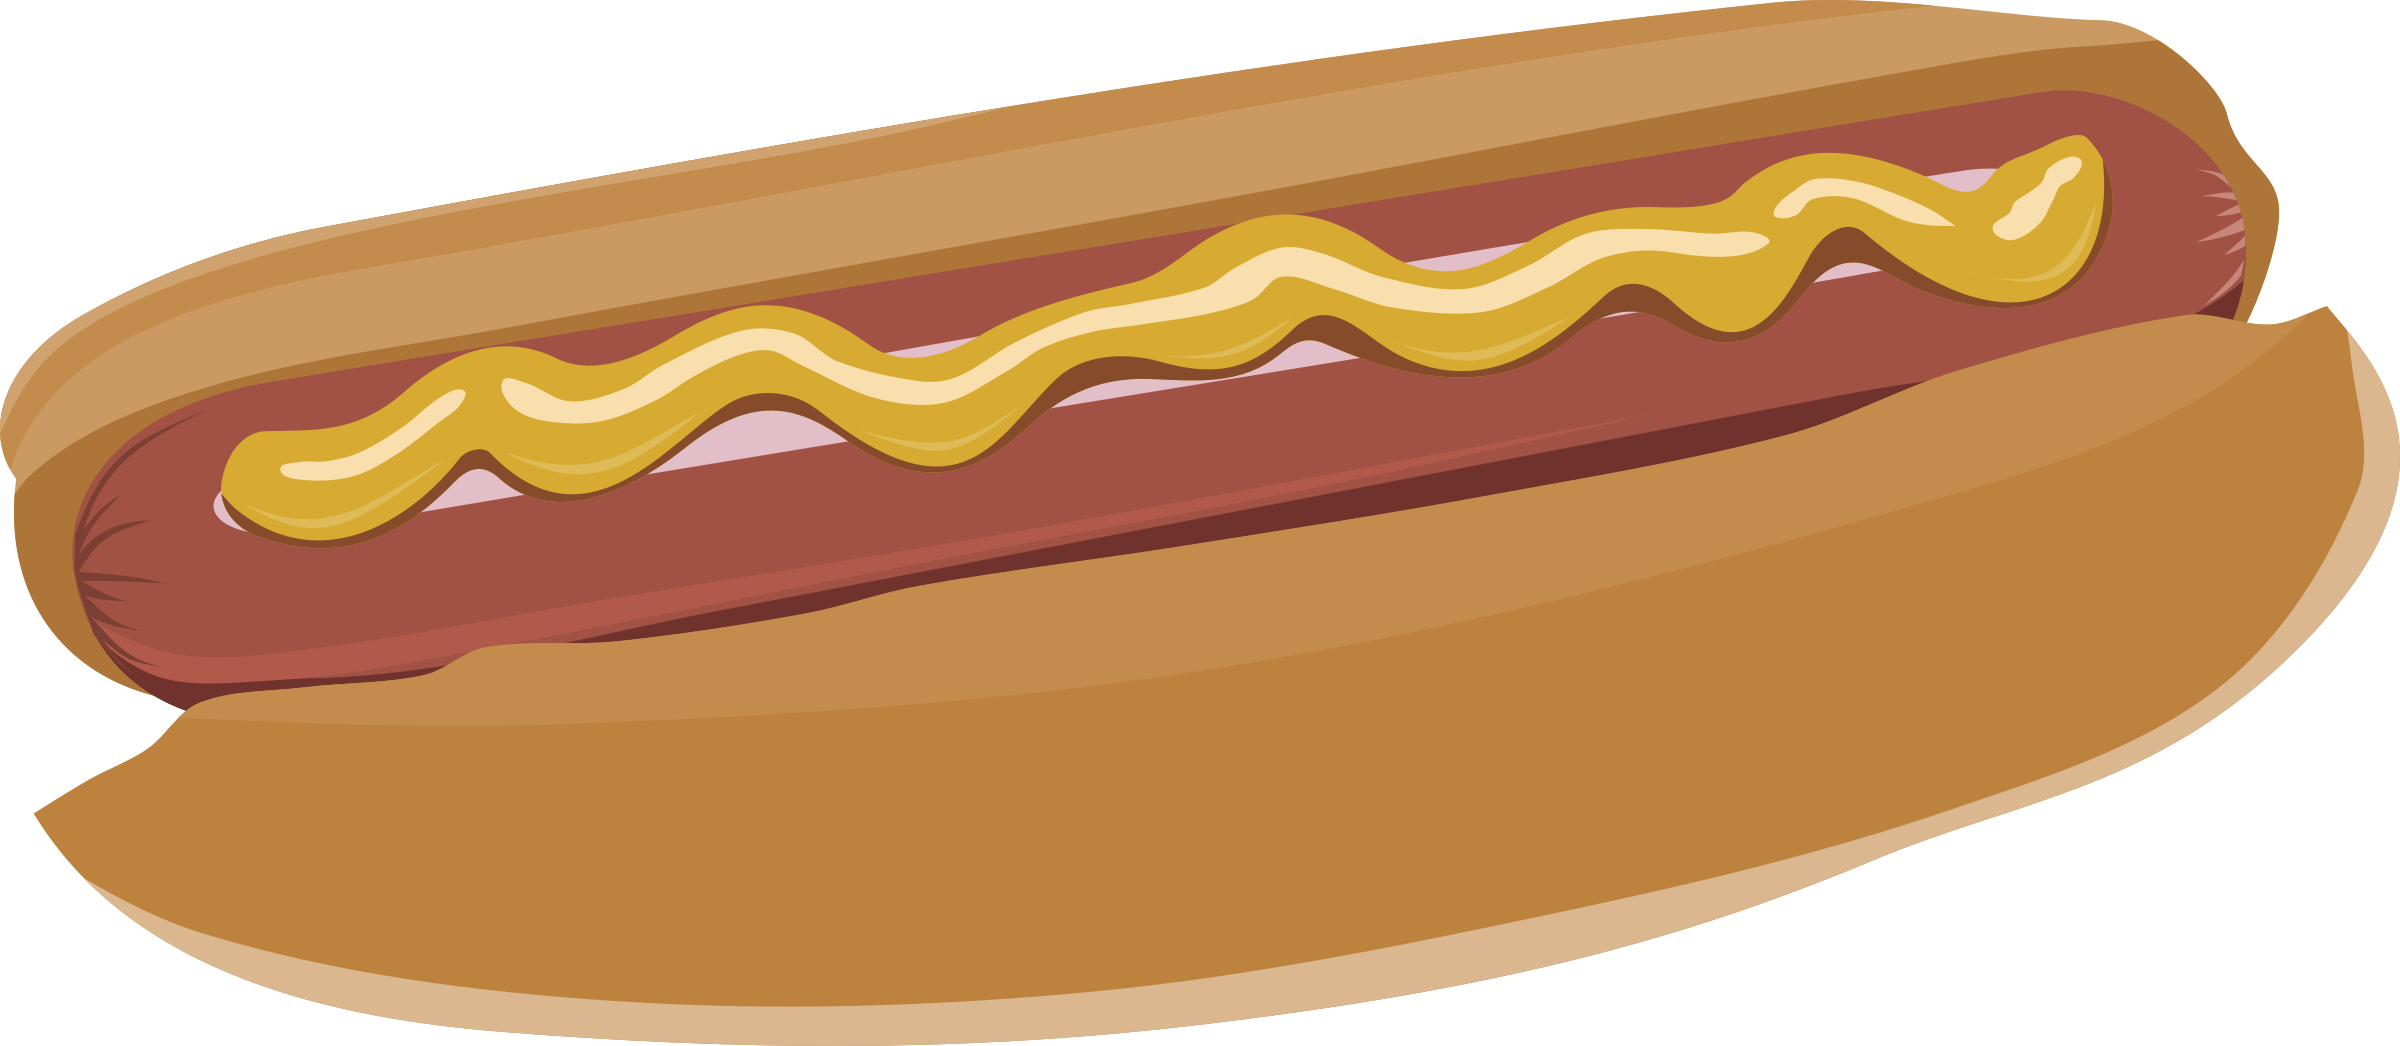 Hot dog by Rones by rones